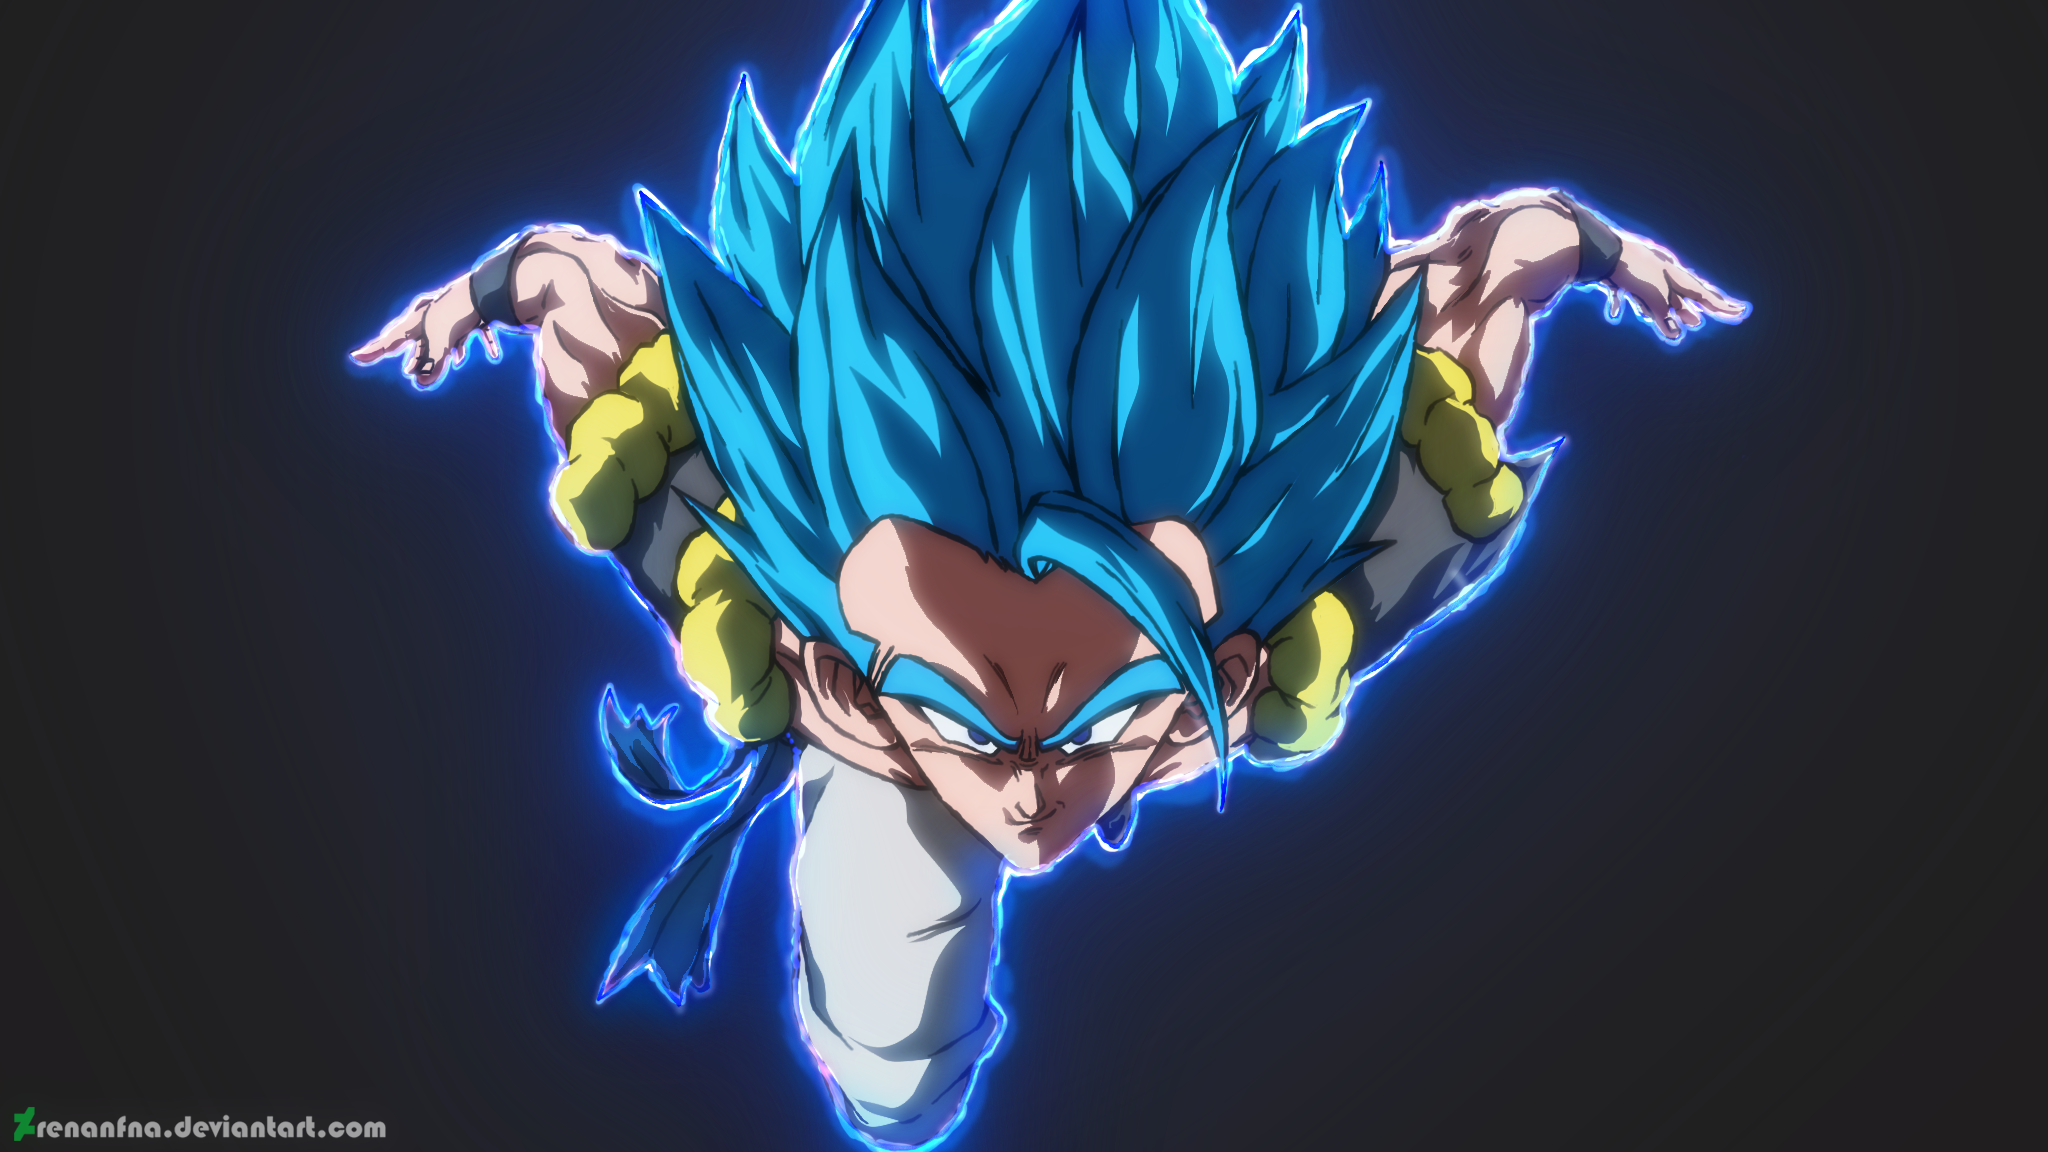 Gogeta Ss Blue Hd Wallpaper Background Image 2048x1152